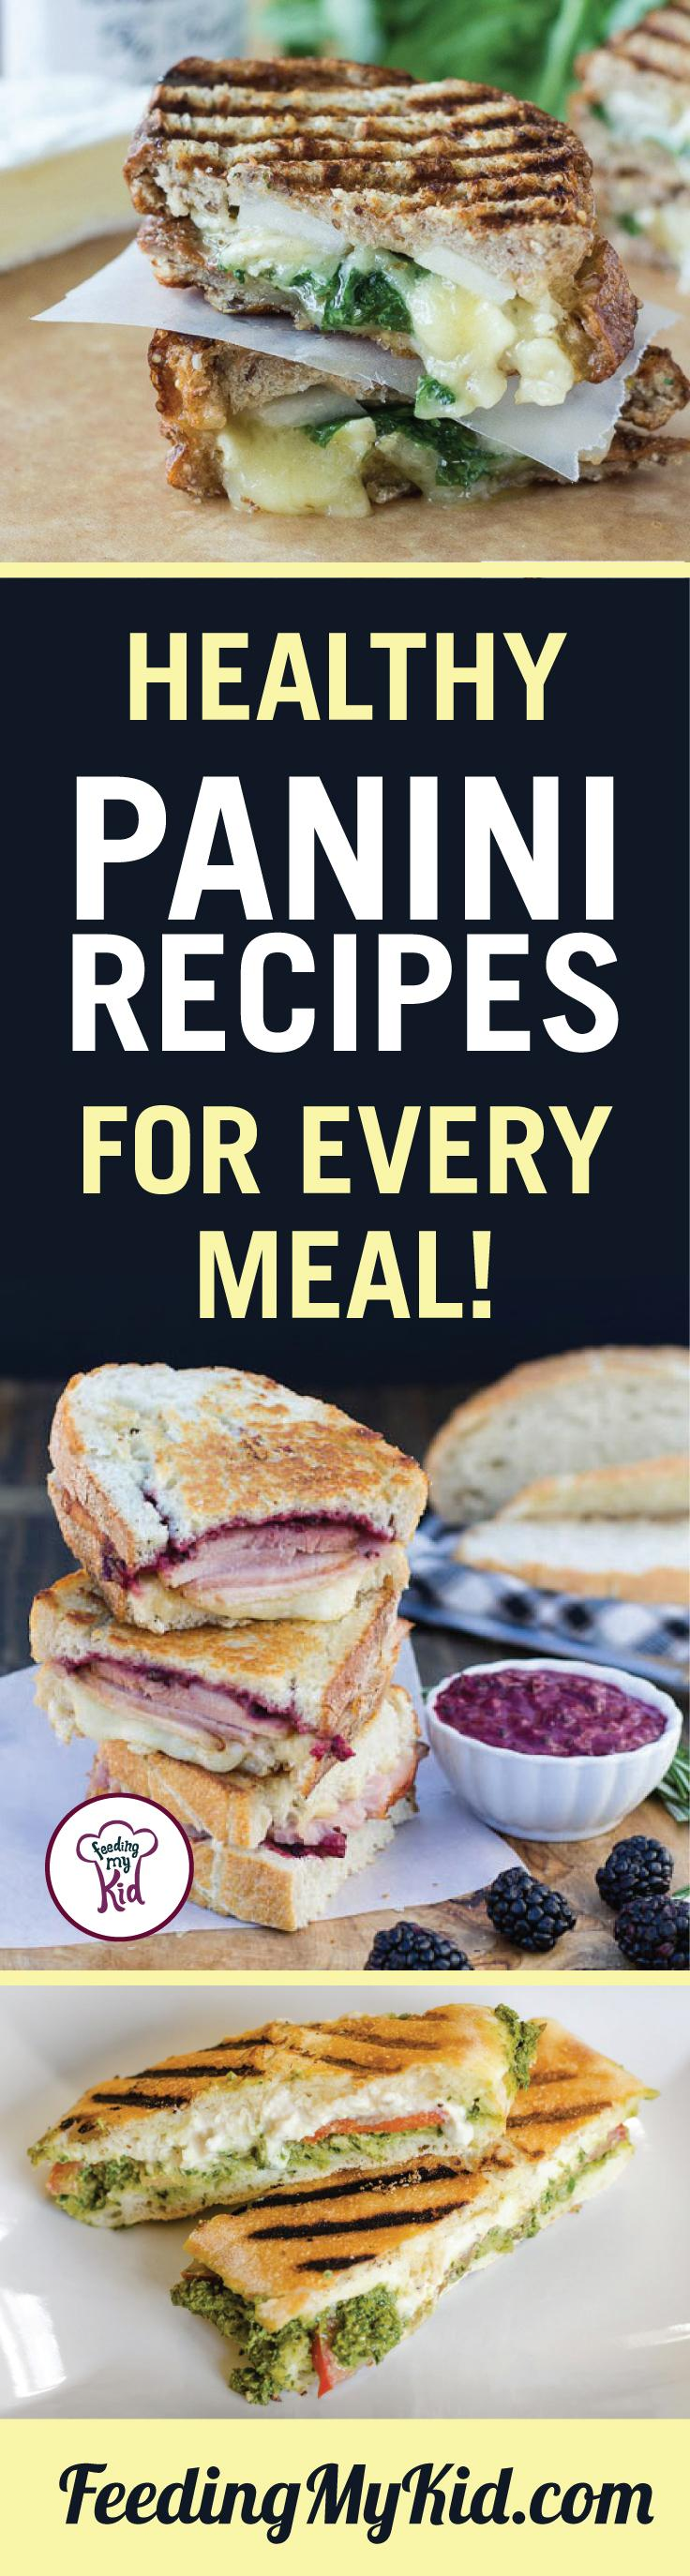 This is a must share! Try these healthy panini recipes. They're great tasting and amazingly delicious. Feeding My Kid is filled with all the information you need about how to raise your kids, from healthy tips to nutritious recipes. #FeedingMyKid #paninirecipes #lunch #dinner #recipes